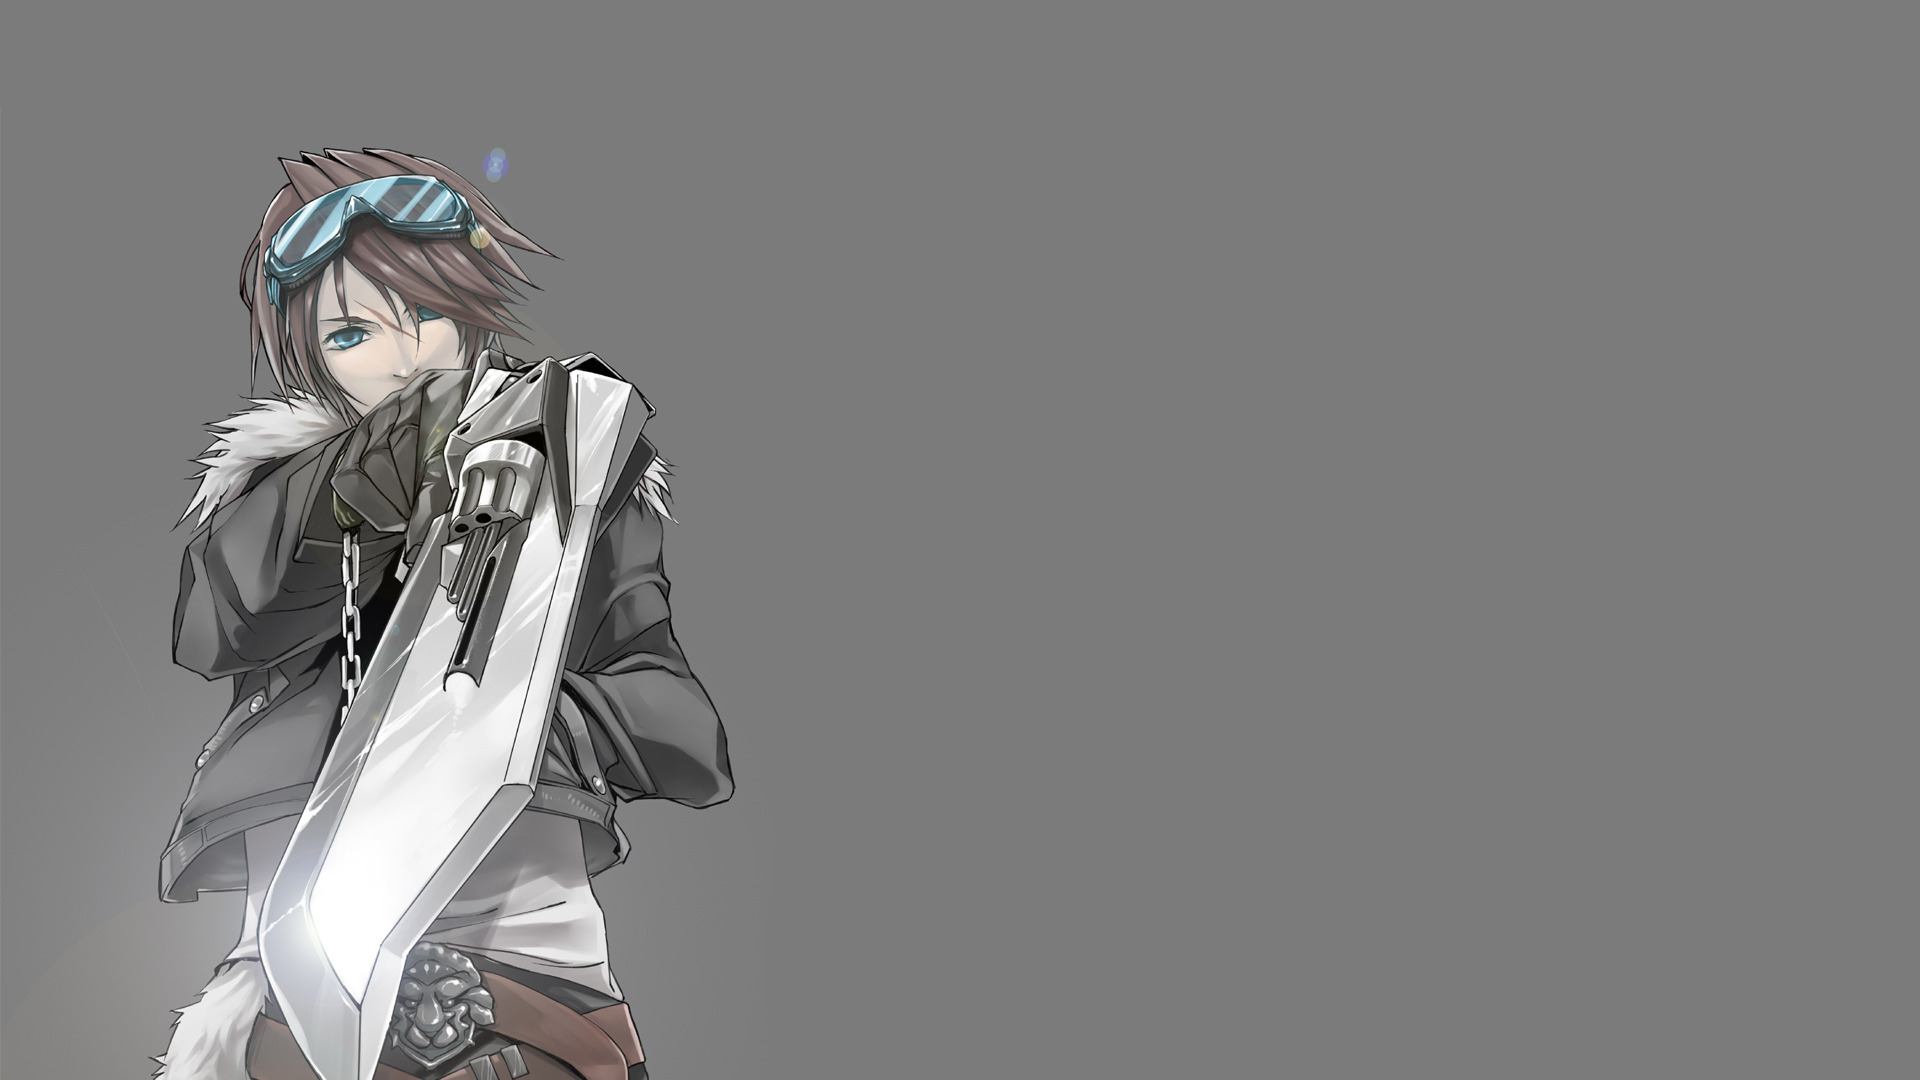 Download Wallpaper Minimalism Grey Background Squall Leonhart